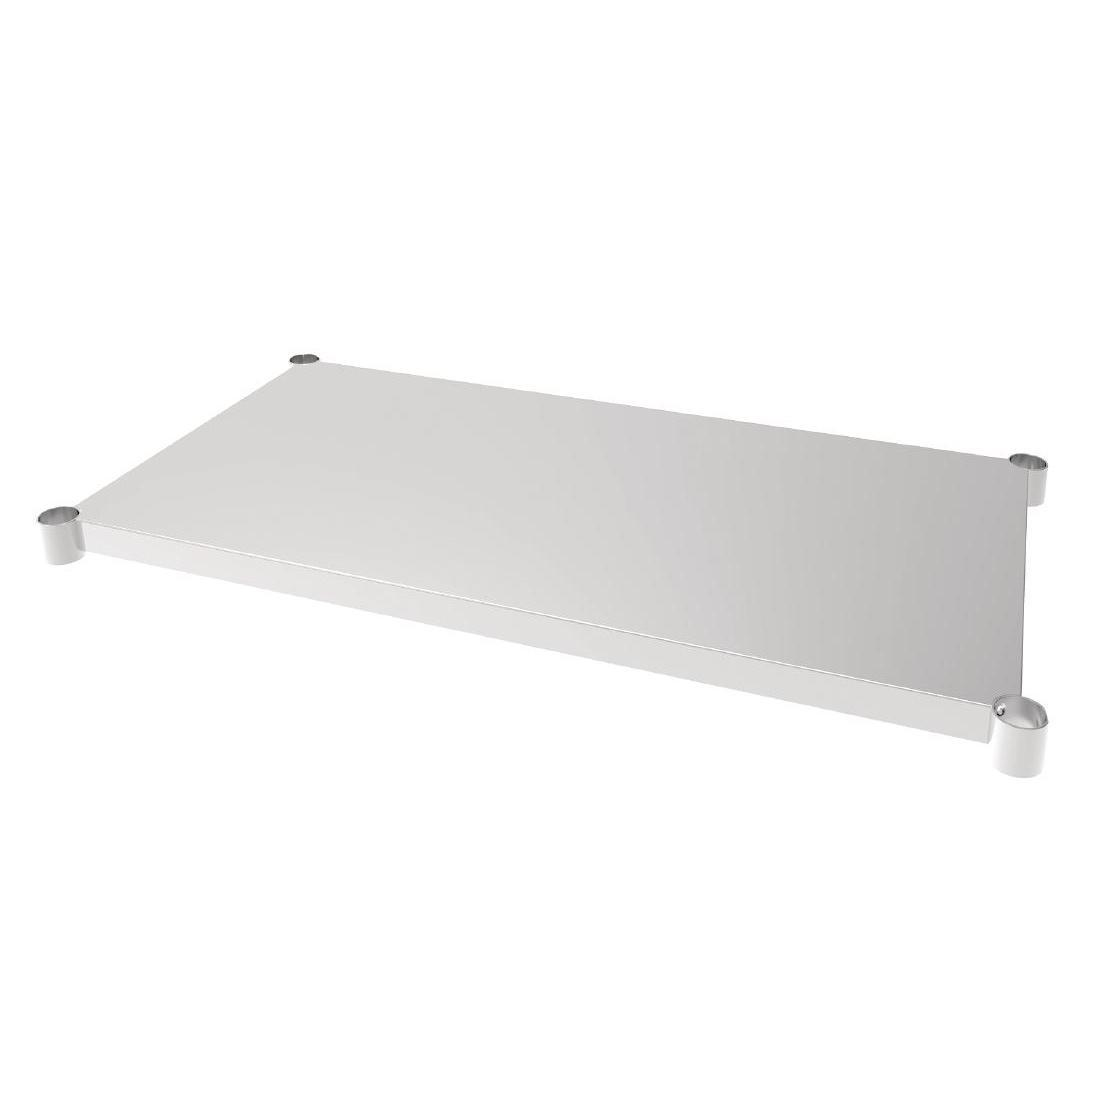 Vogue Stainless Steel Table Shelf 700x1200mm - Each - CP837